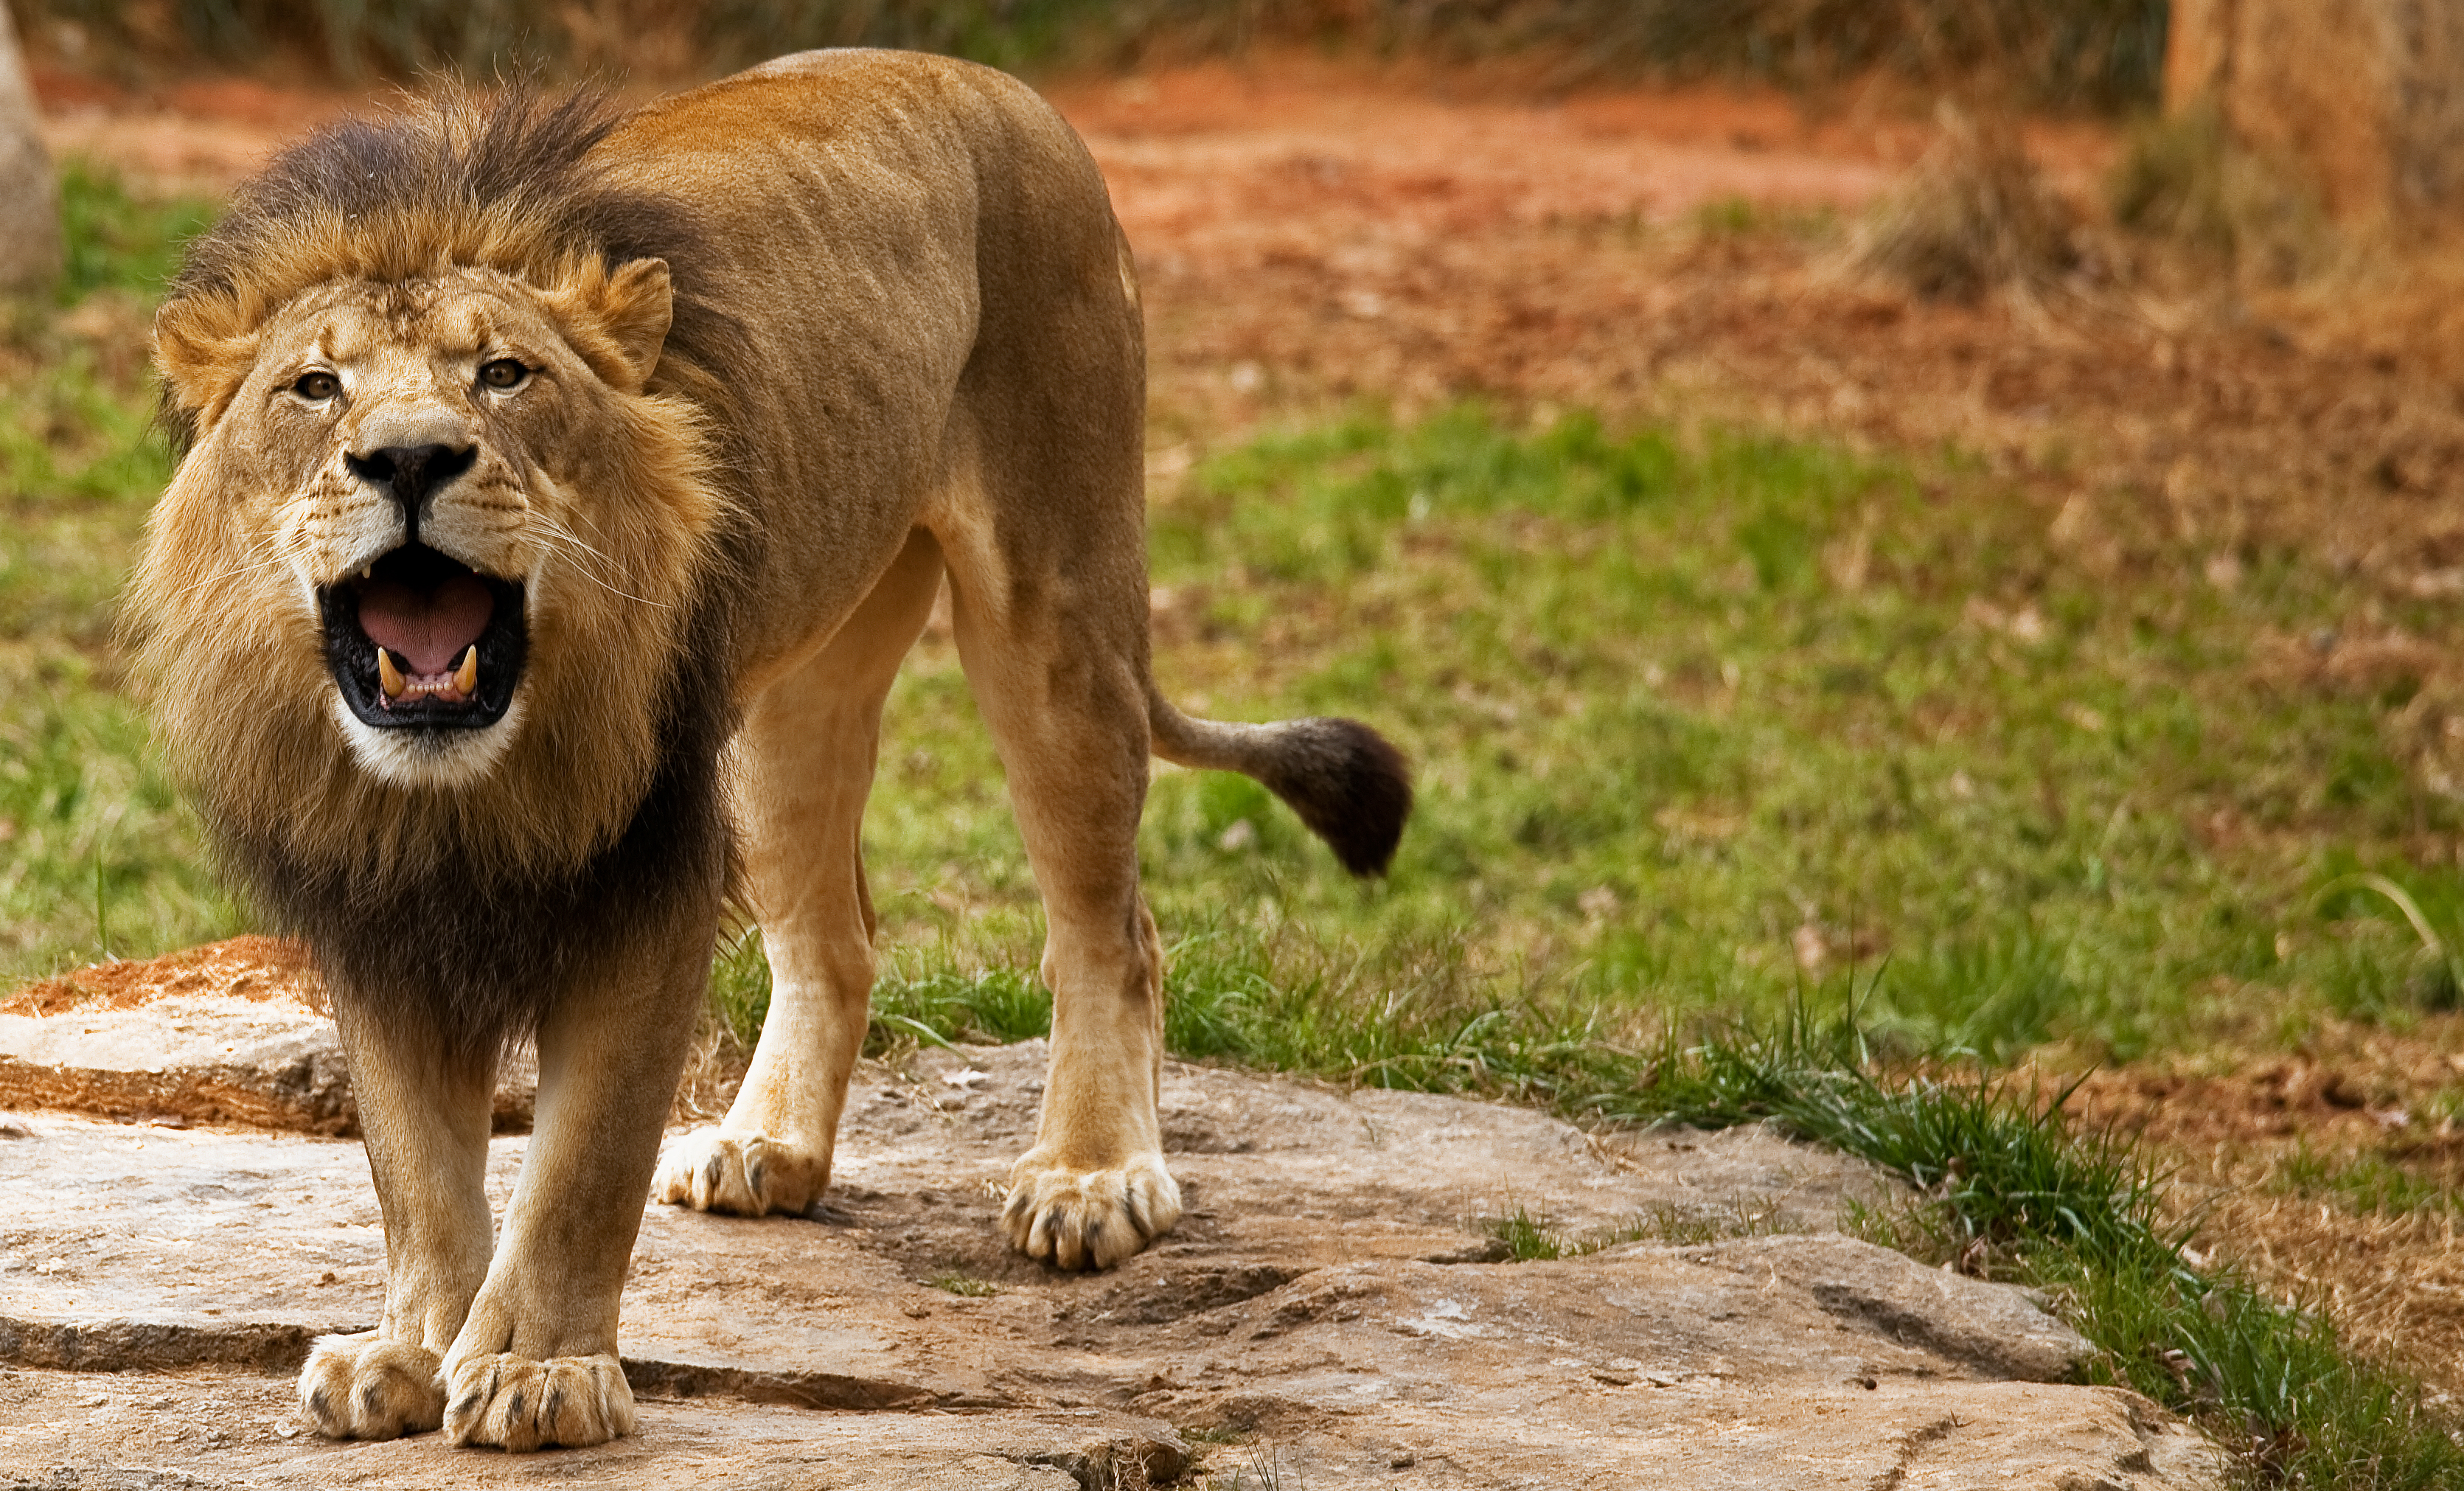 Angry Lion Wallpaper Hd 1080p Widescreen | Wallpaper sportstle